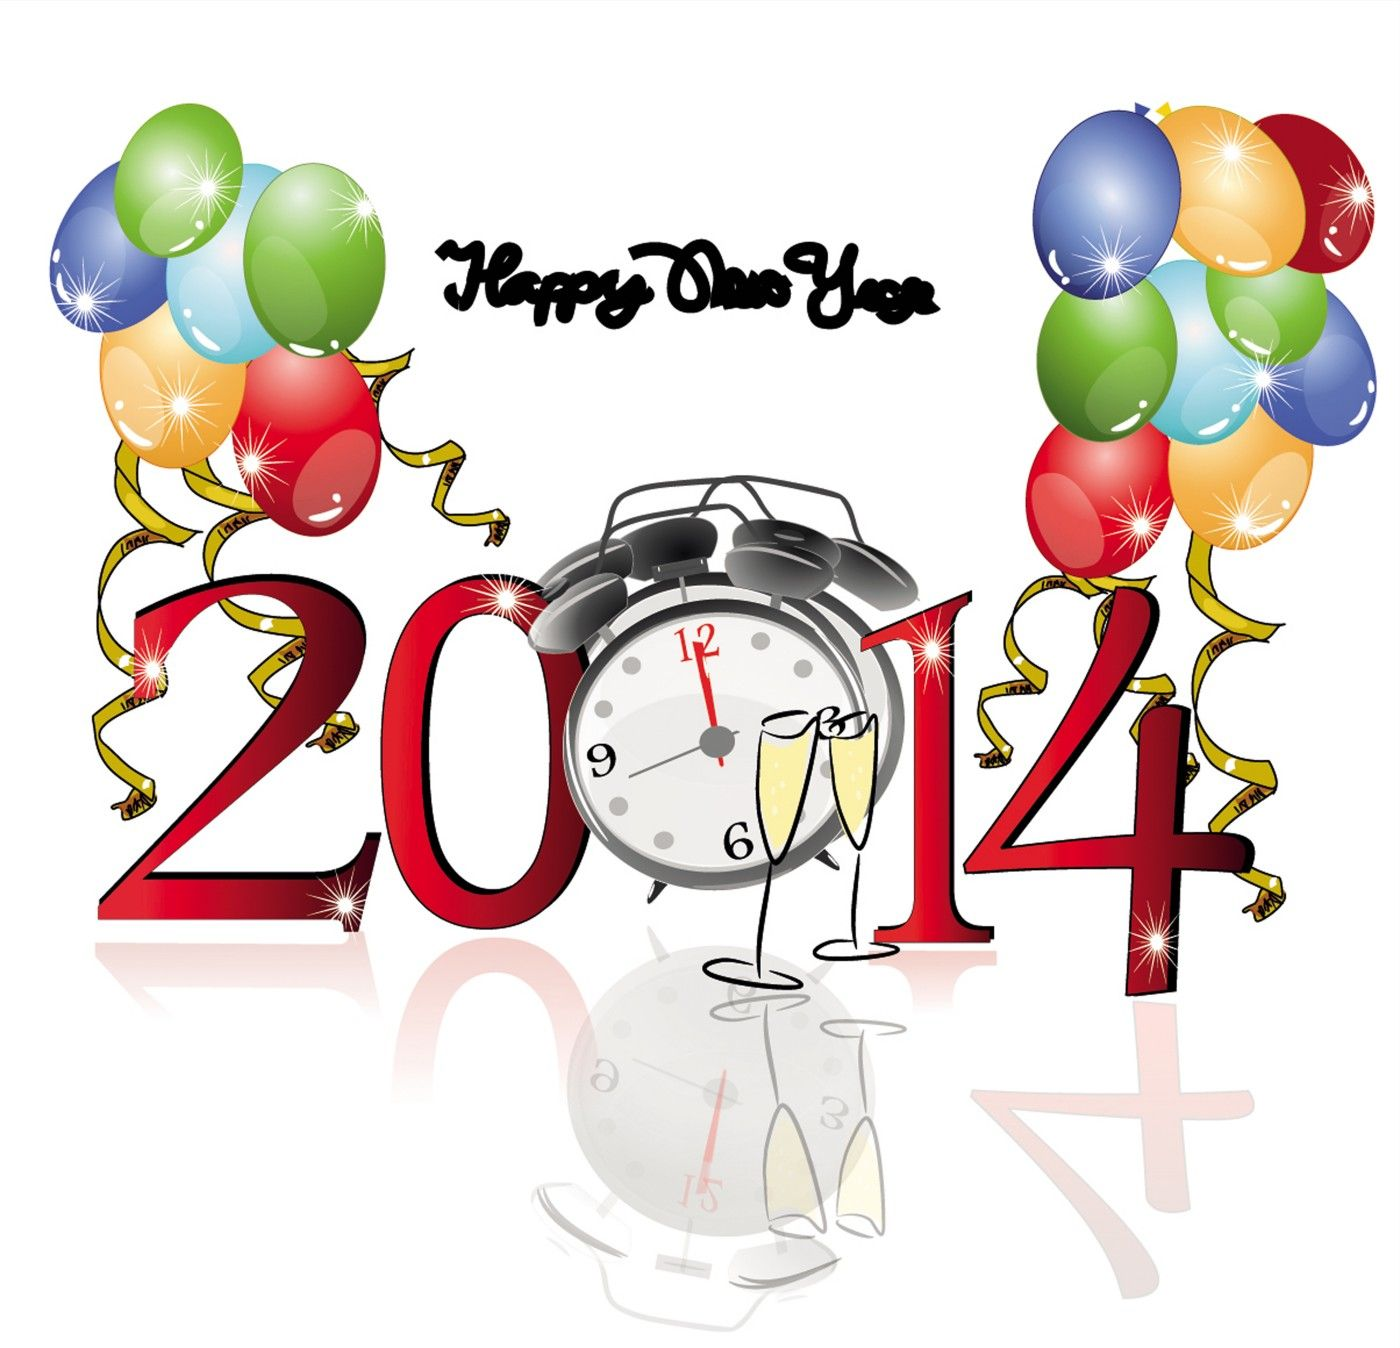 Twin Sisters Speech & Language Therapy LLC: A Walk Through Our 2014 ...